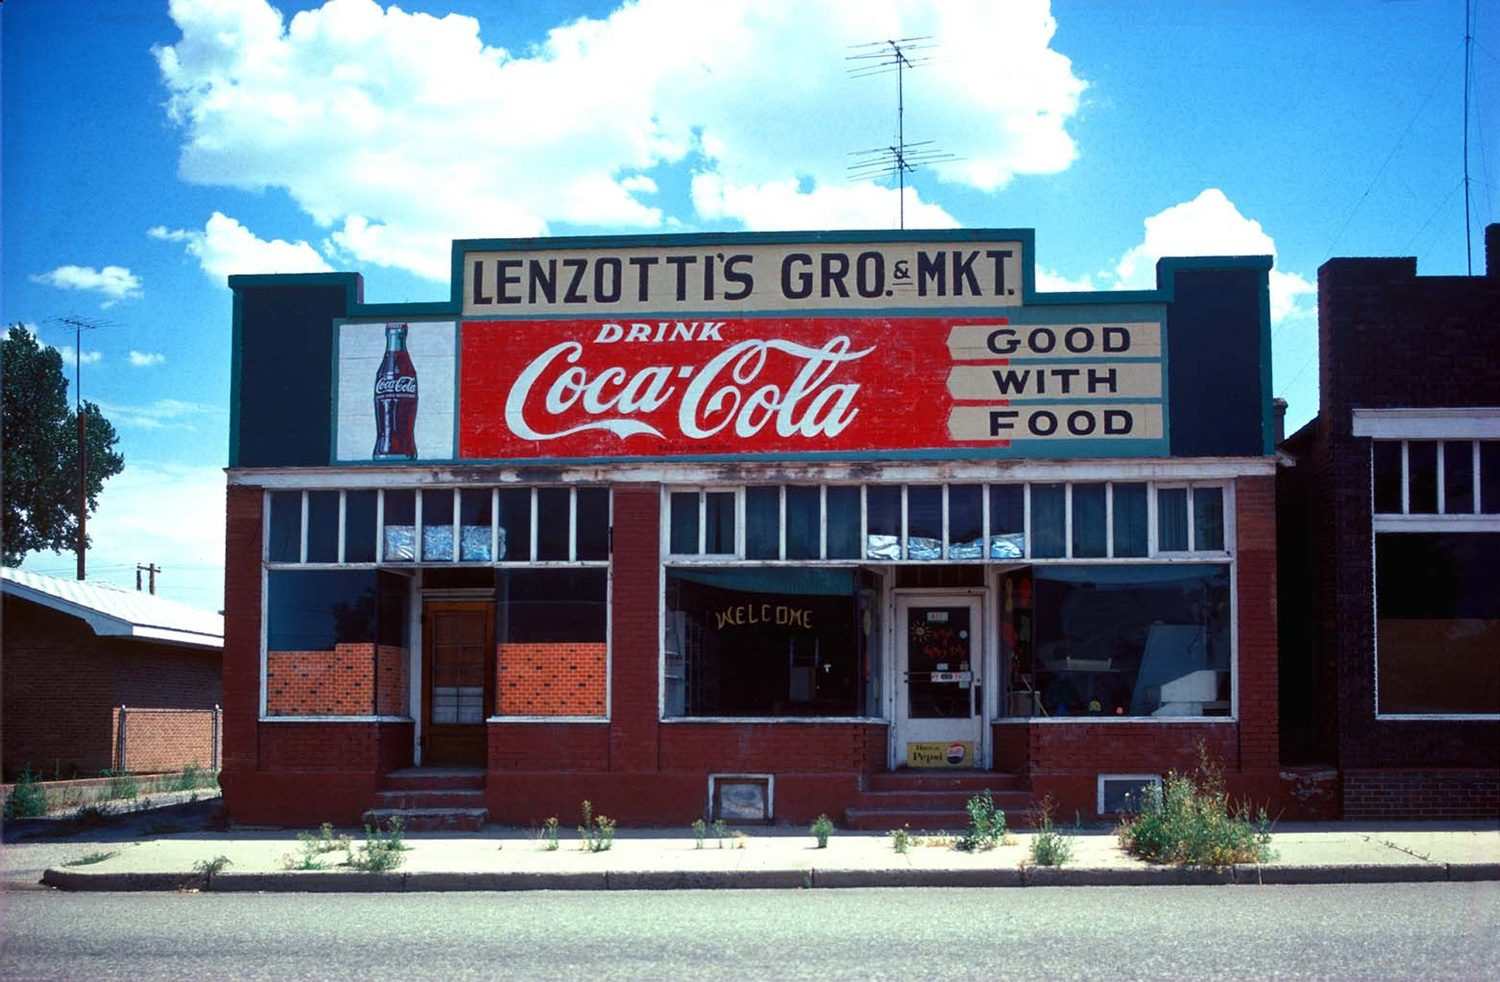 Lenzotti's, Arizona